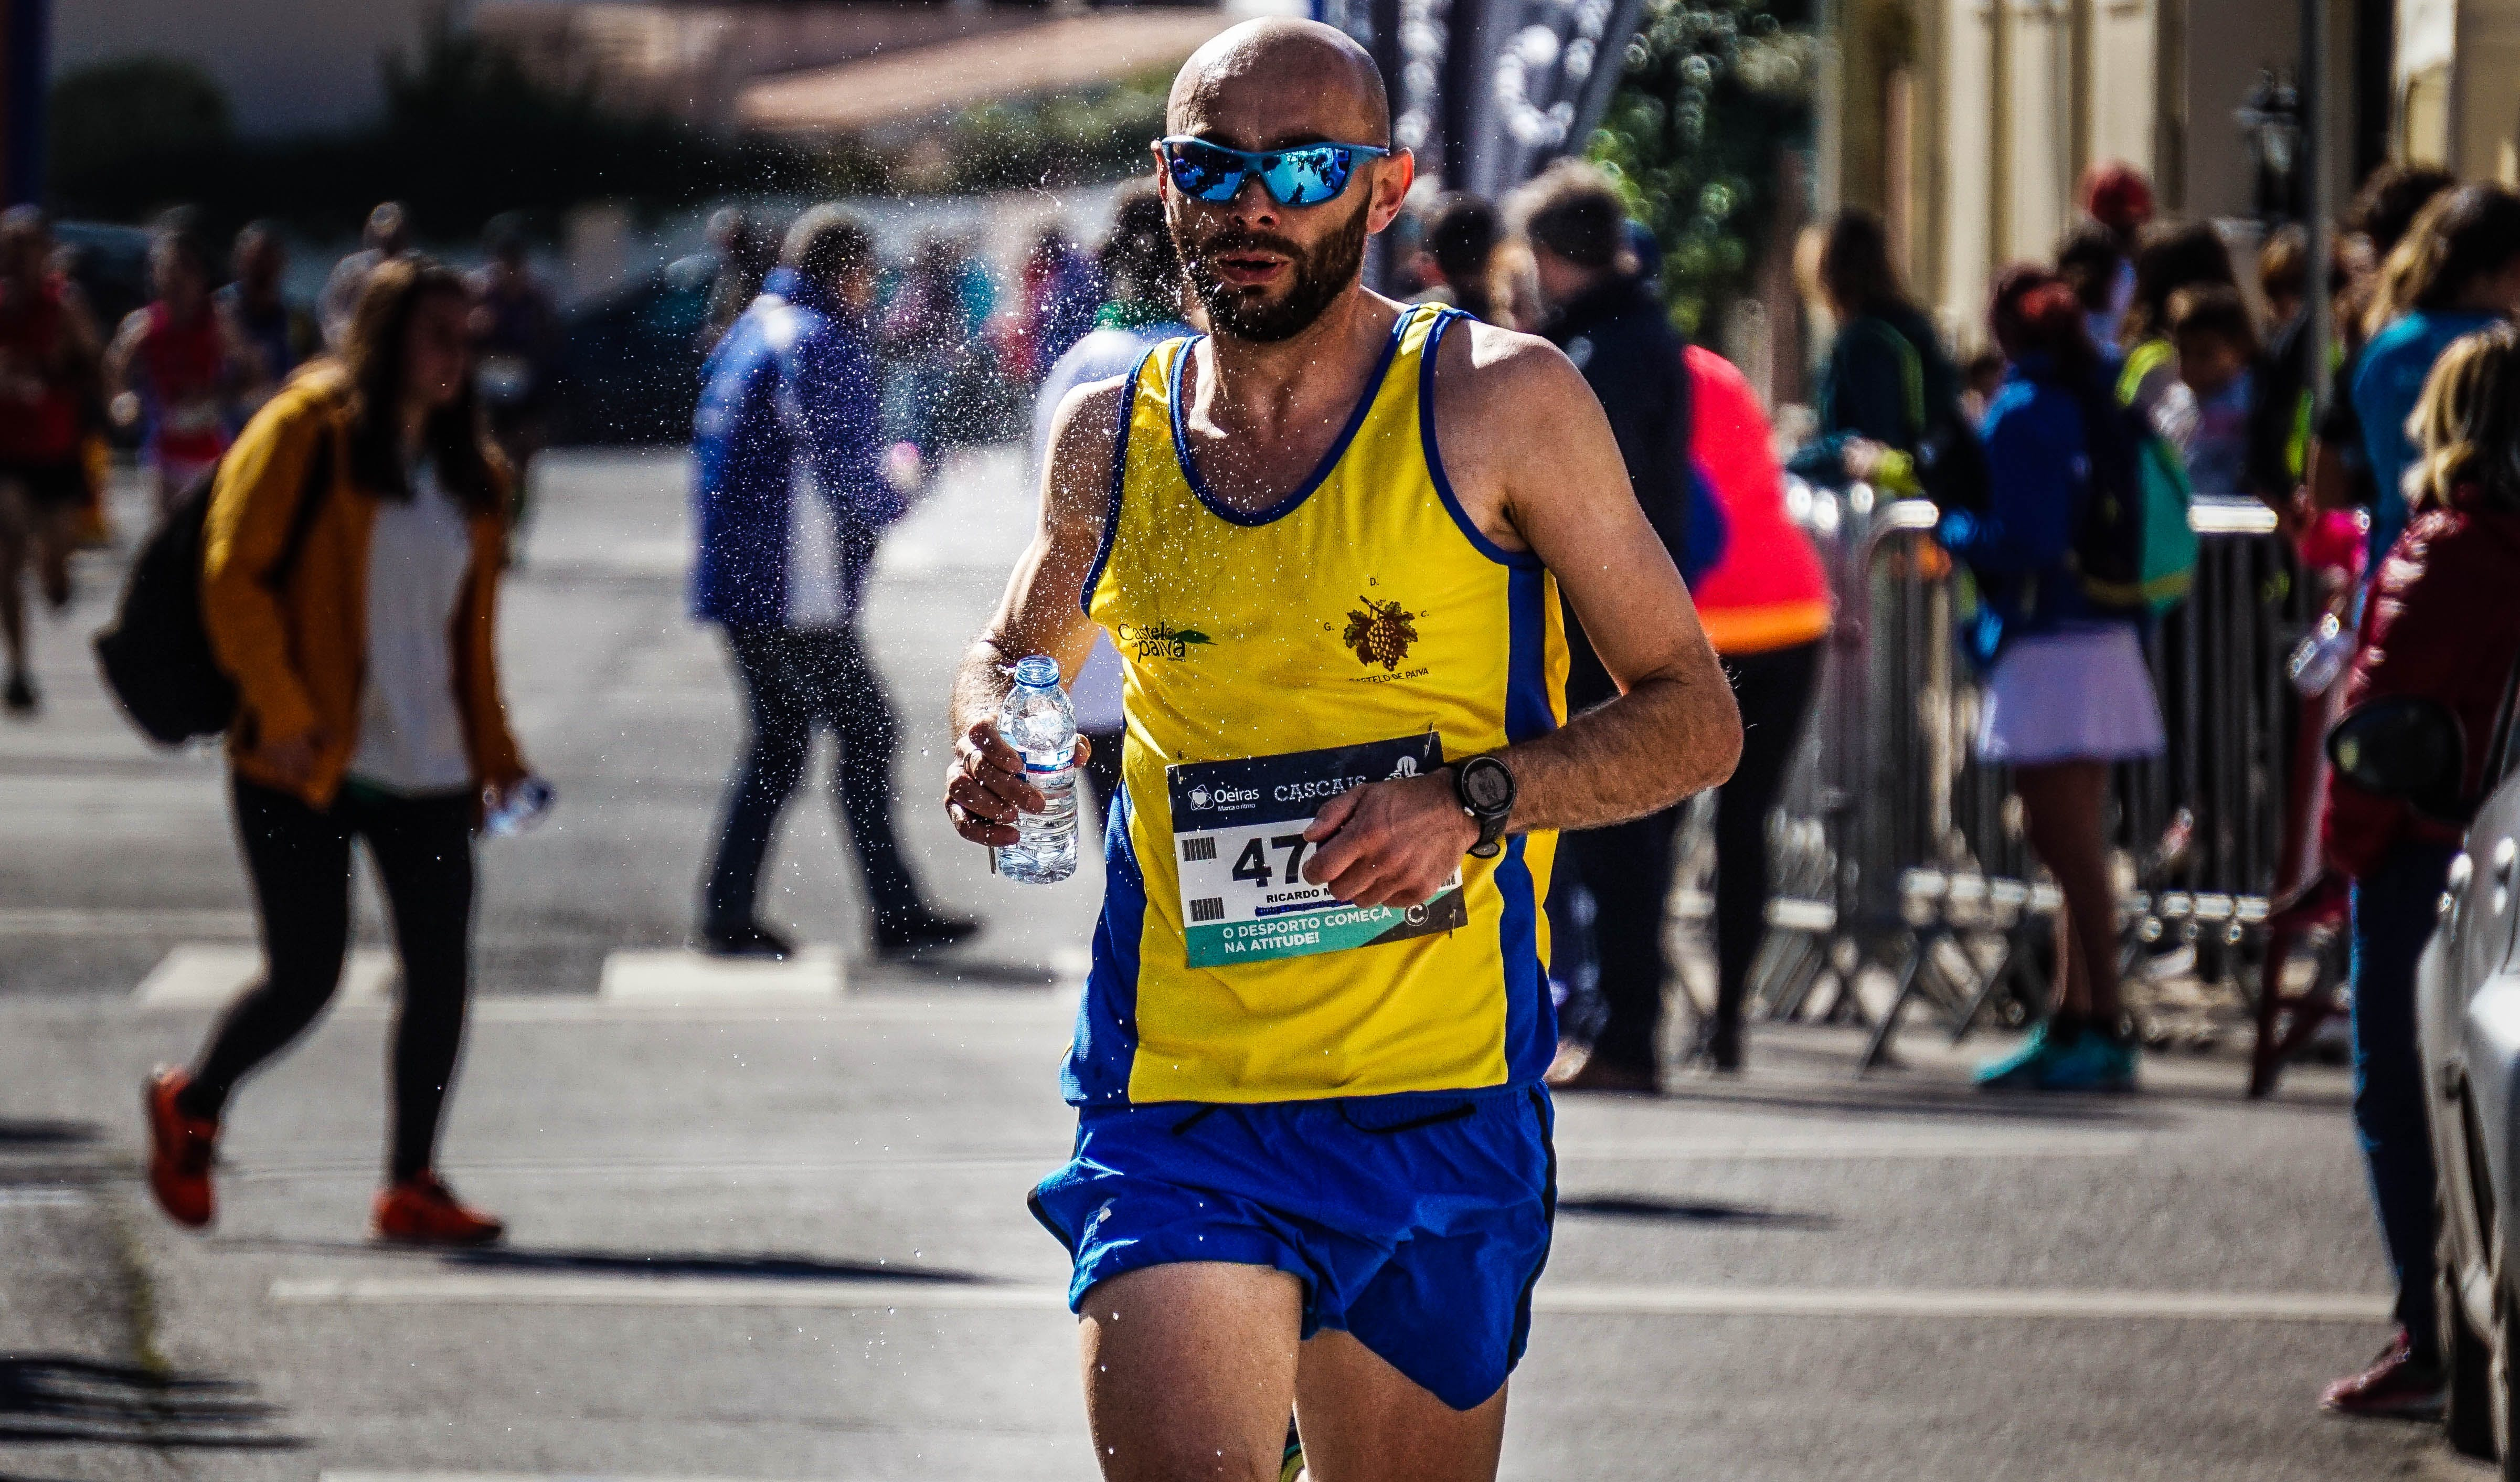 Man in Yellow and Blue Tank Top Running